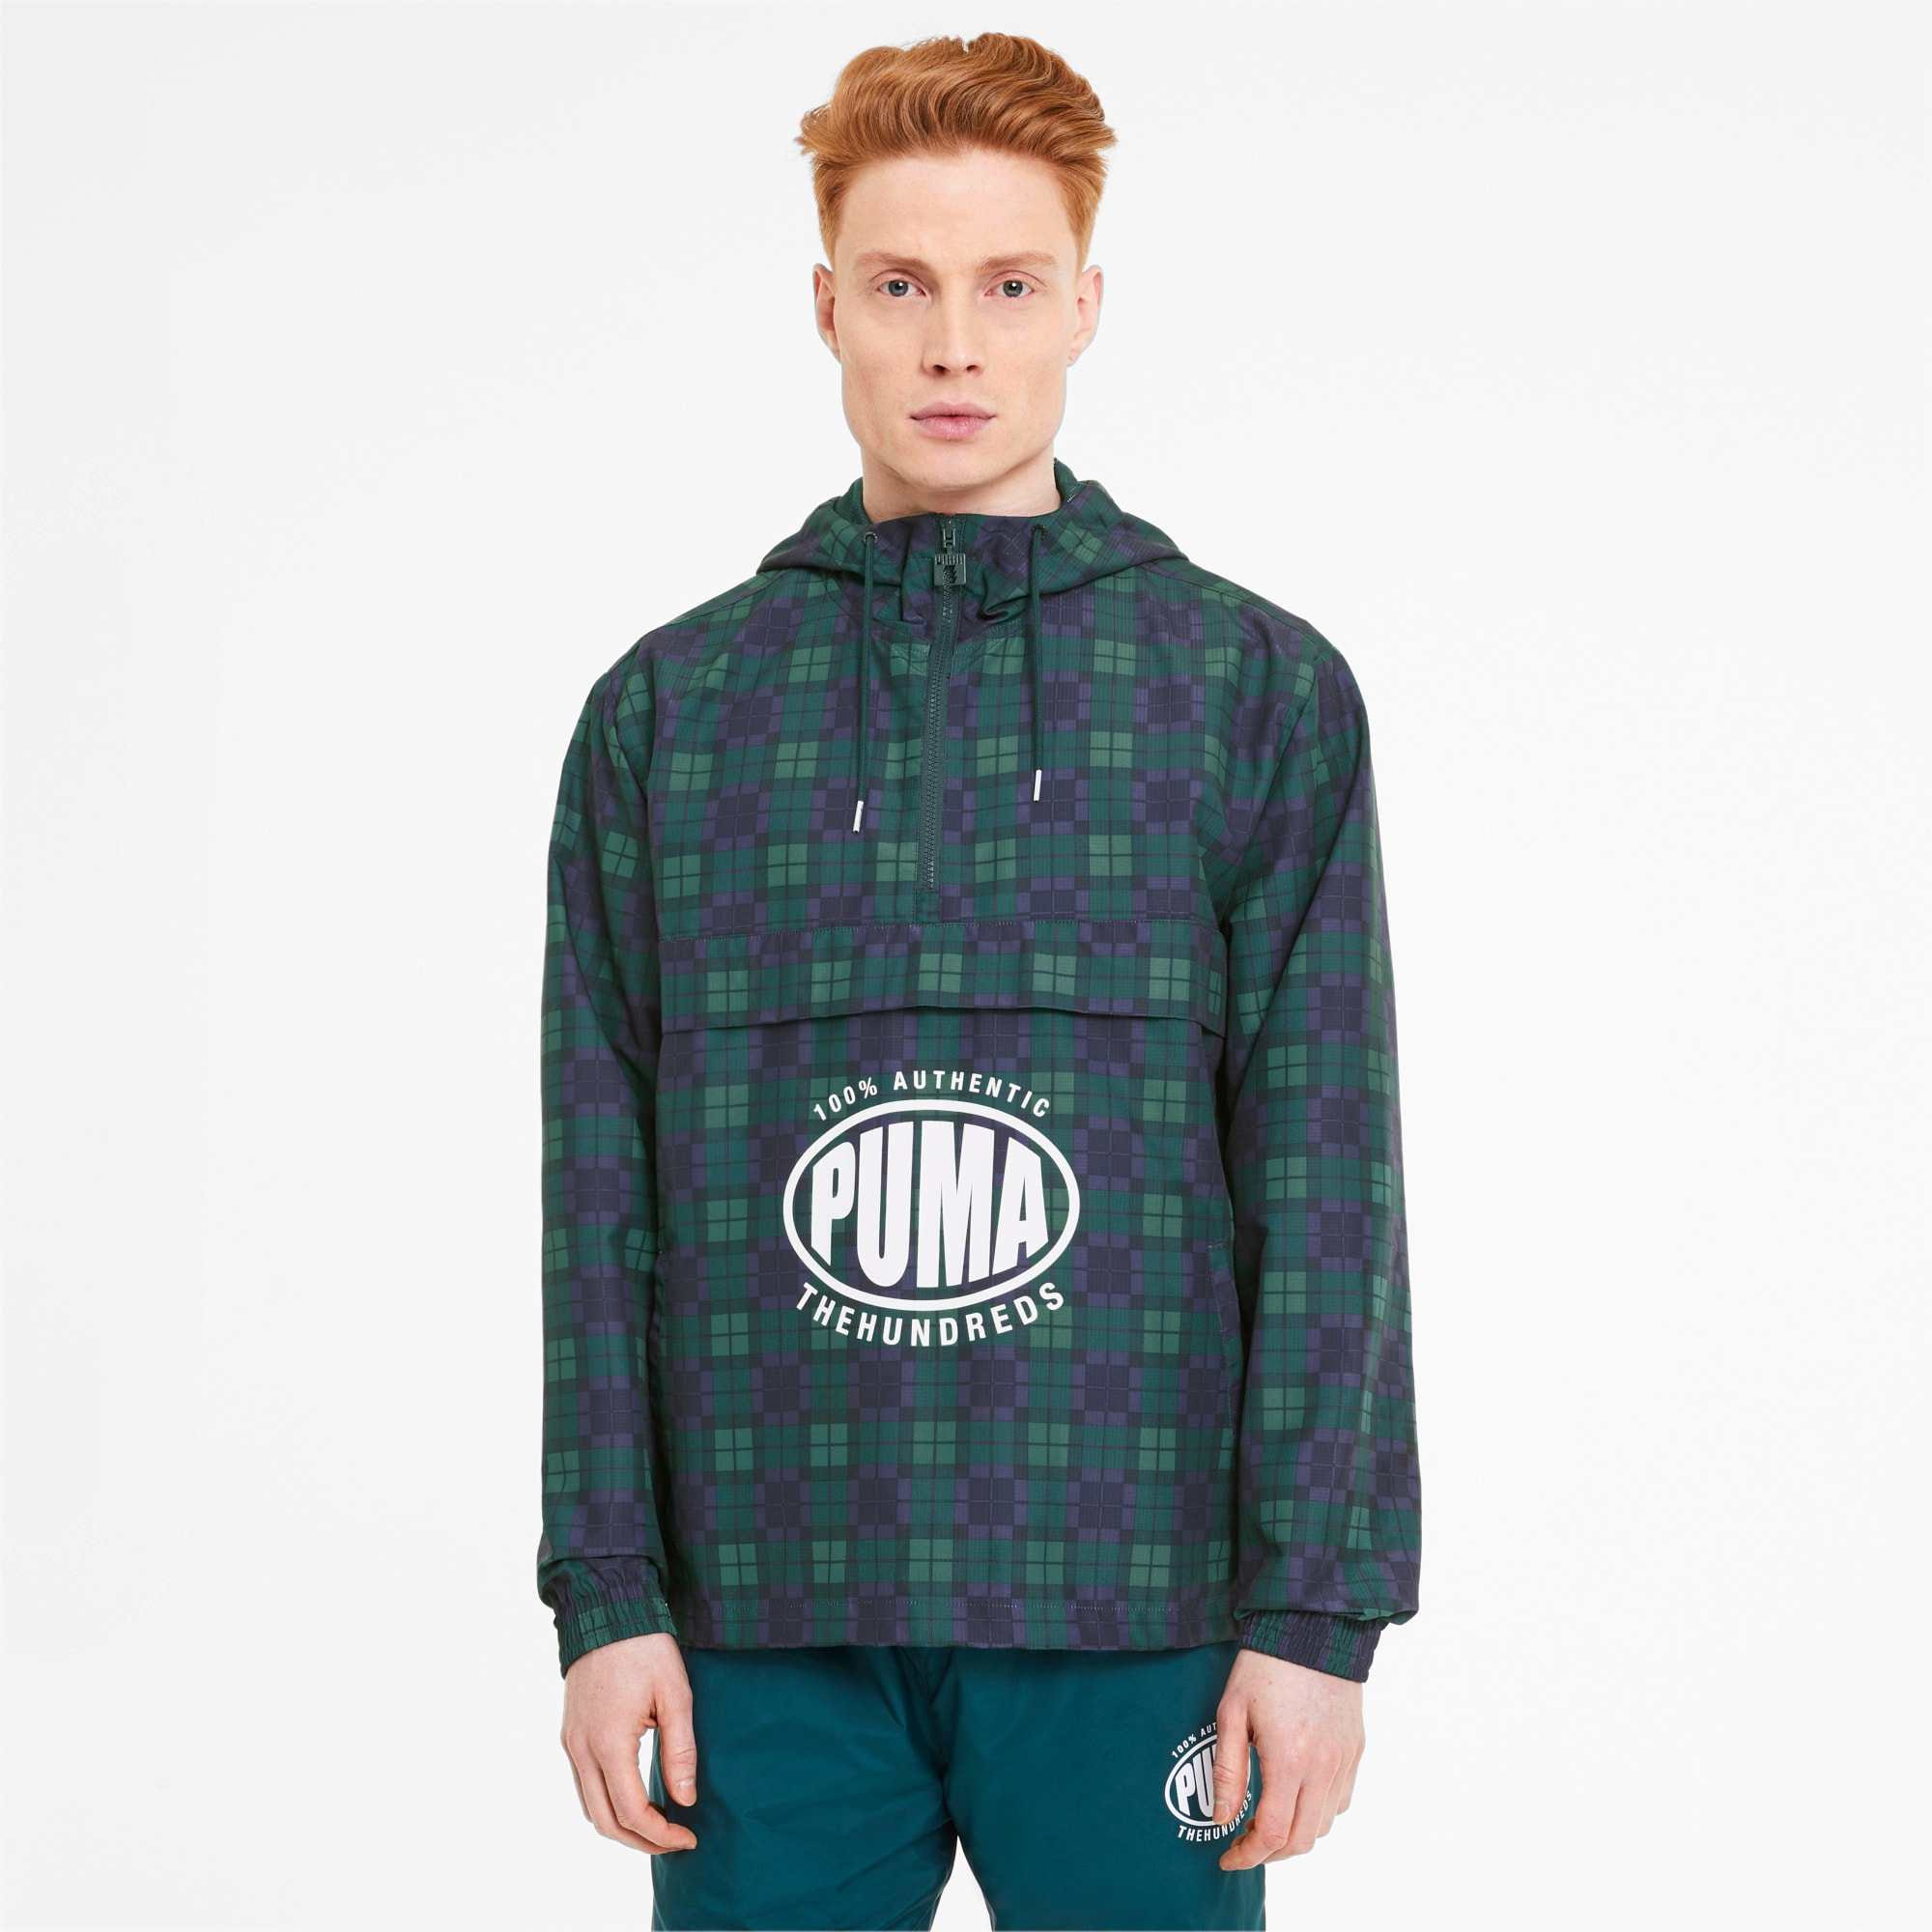 puma -  x THE HUNDREDS Herren Windbreaker | Mit Abstract Muster | Weiß | Größe: XXL